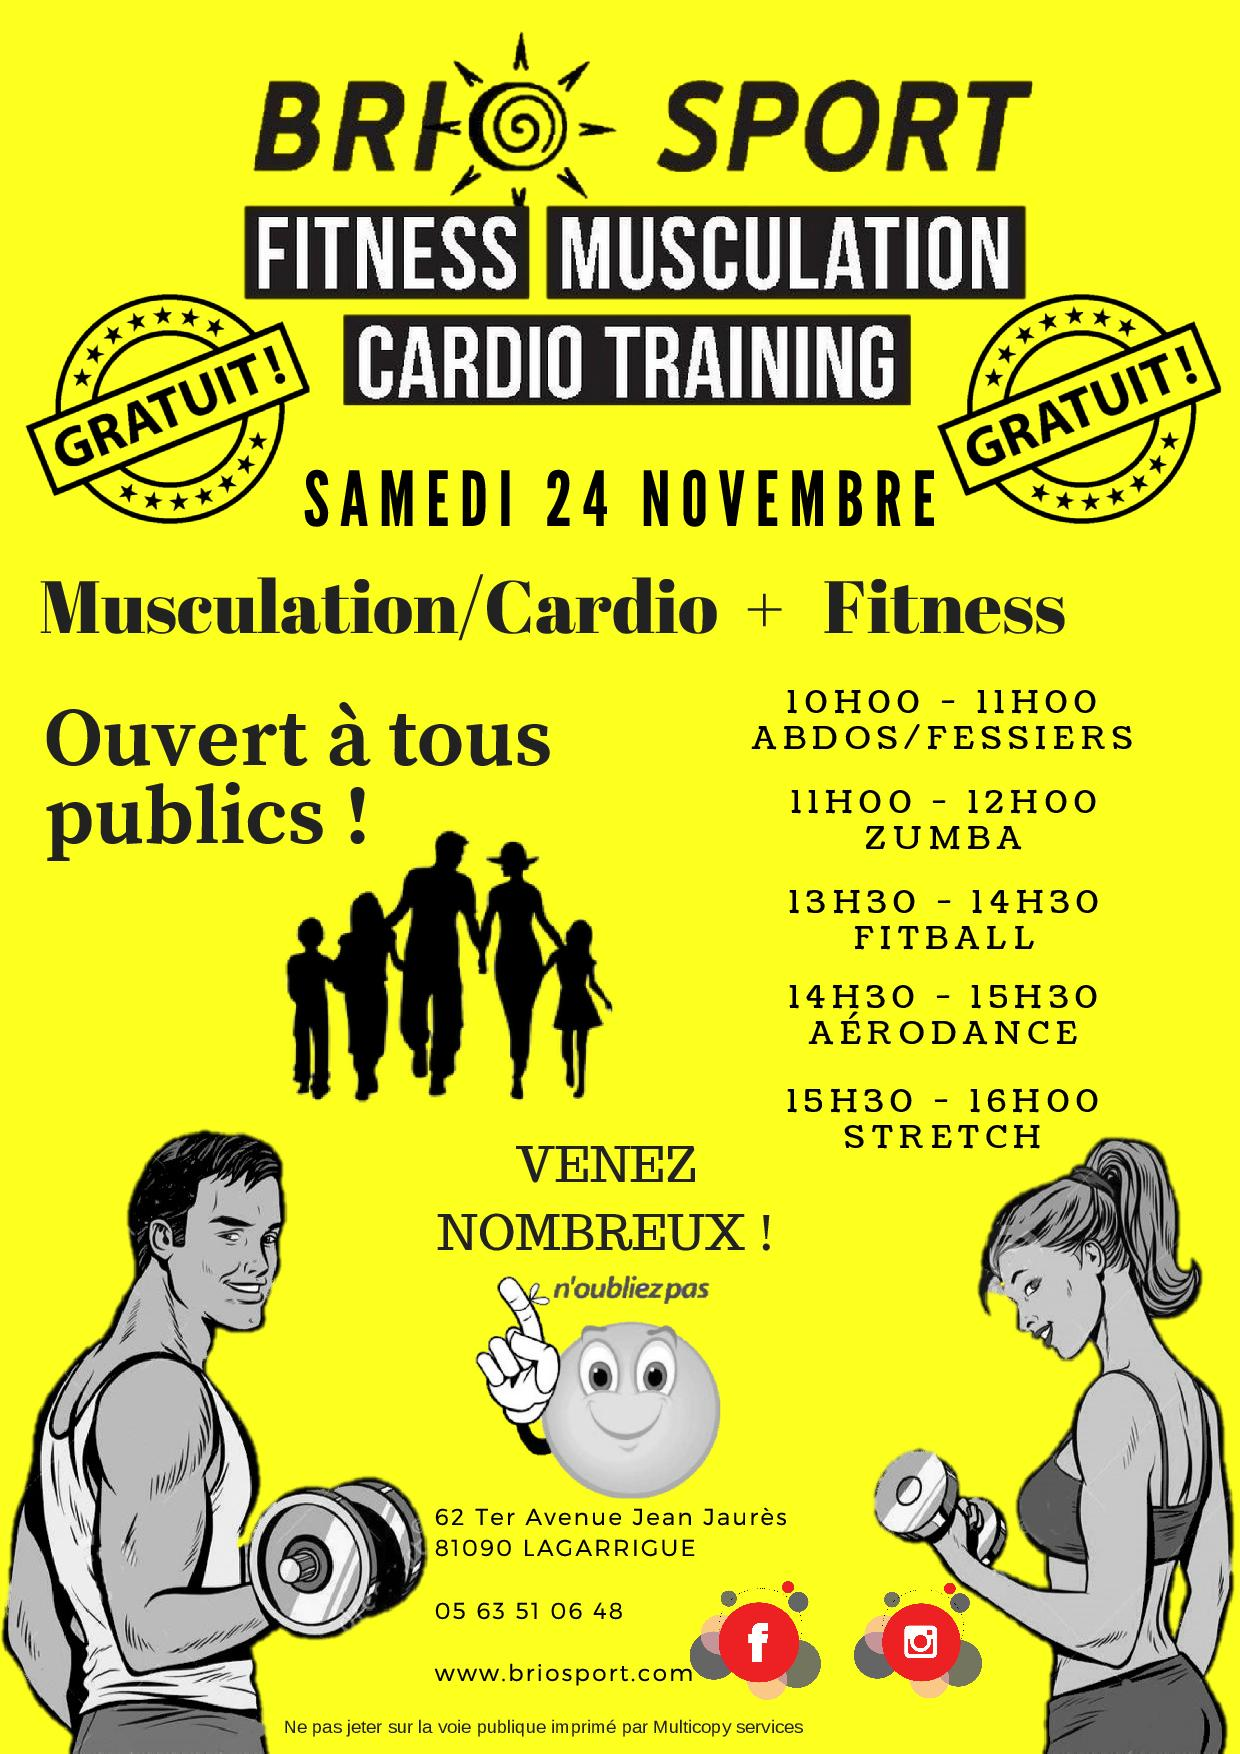 Salle de Sport Fitness Musculation Cardio Cryolipolyse- Castres - Lagarrigue